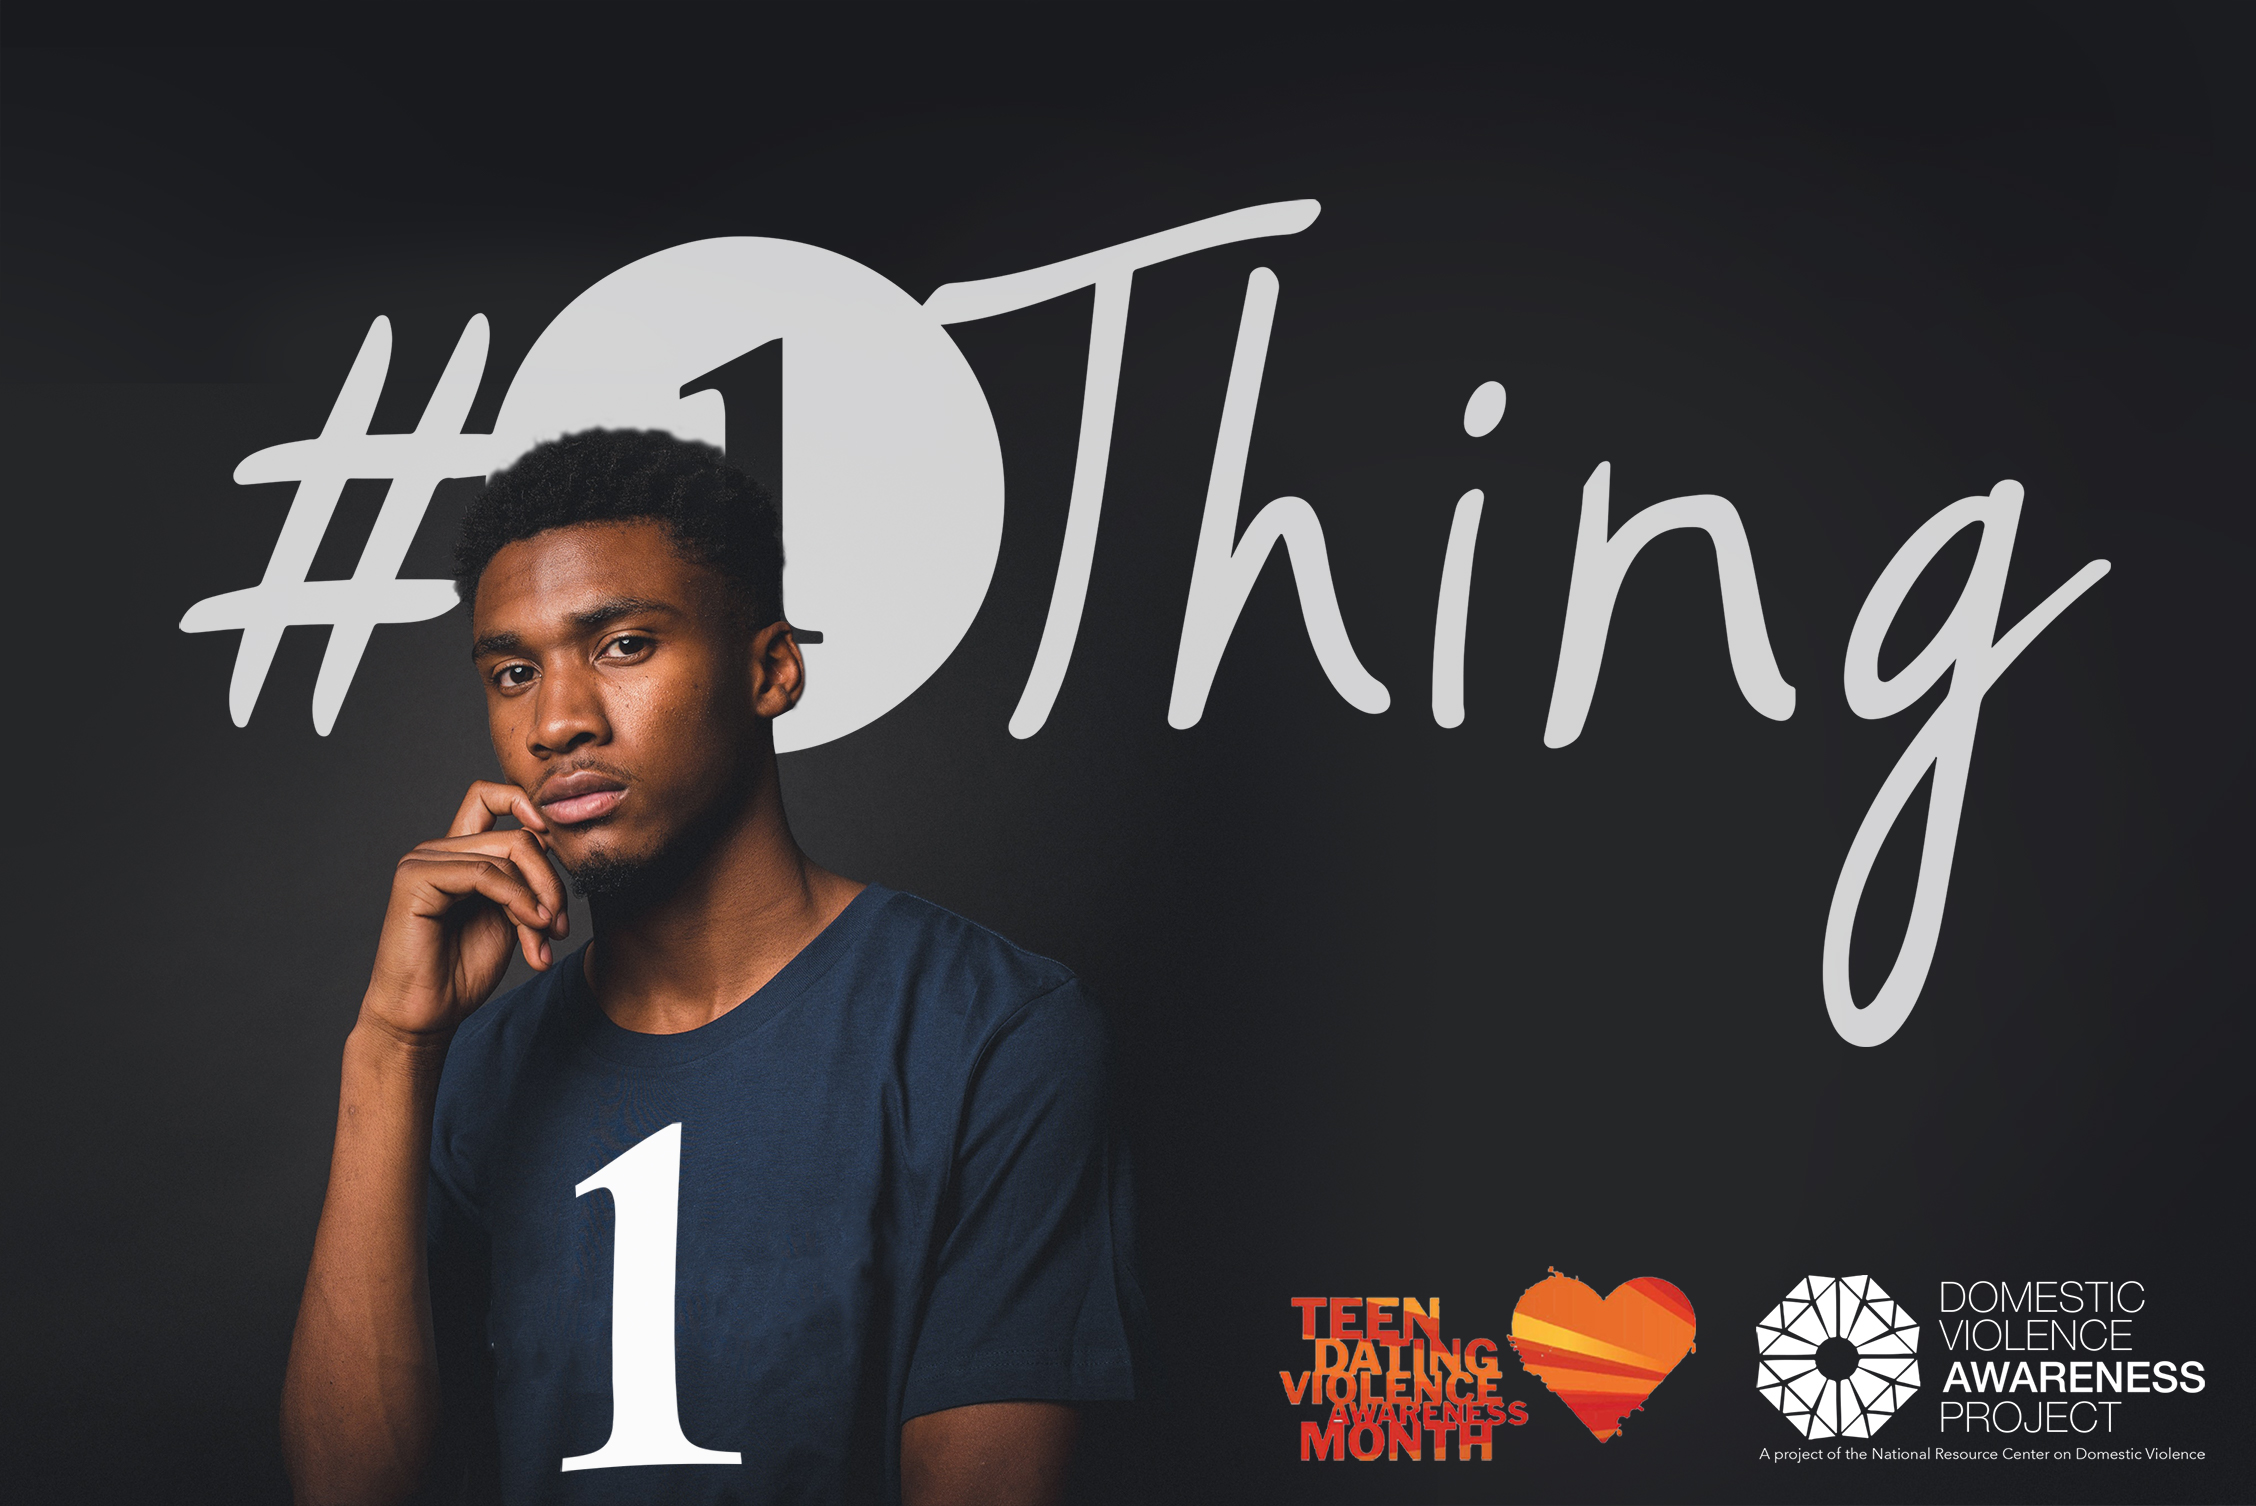 #1Thing logo imposed over image of boy in a 1 T-shirt